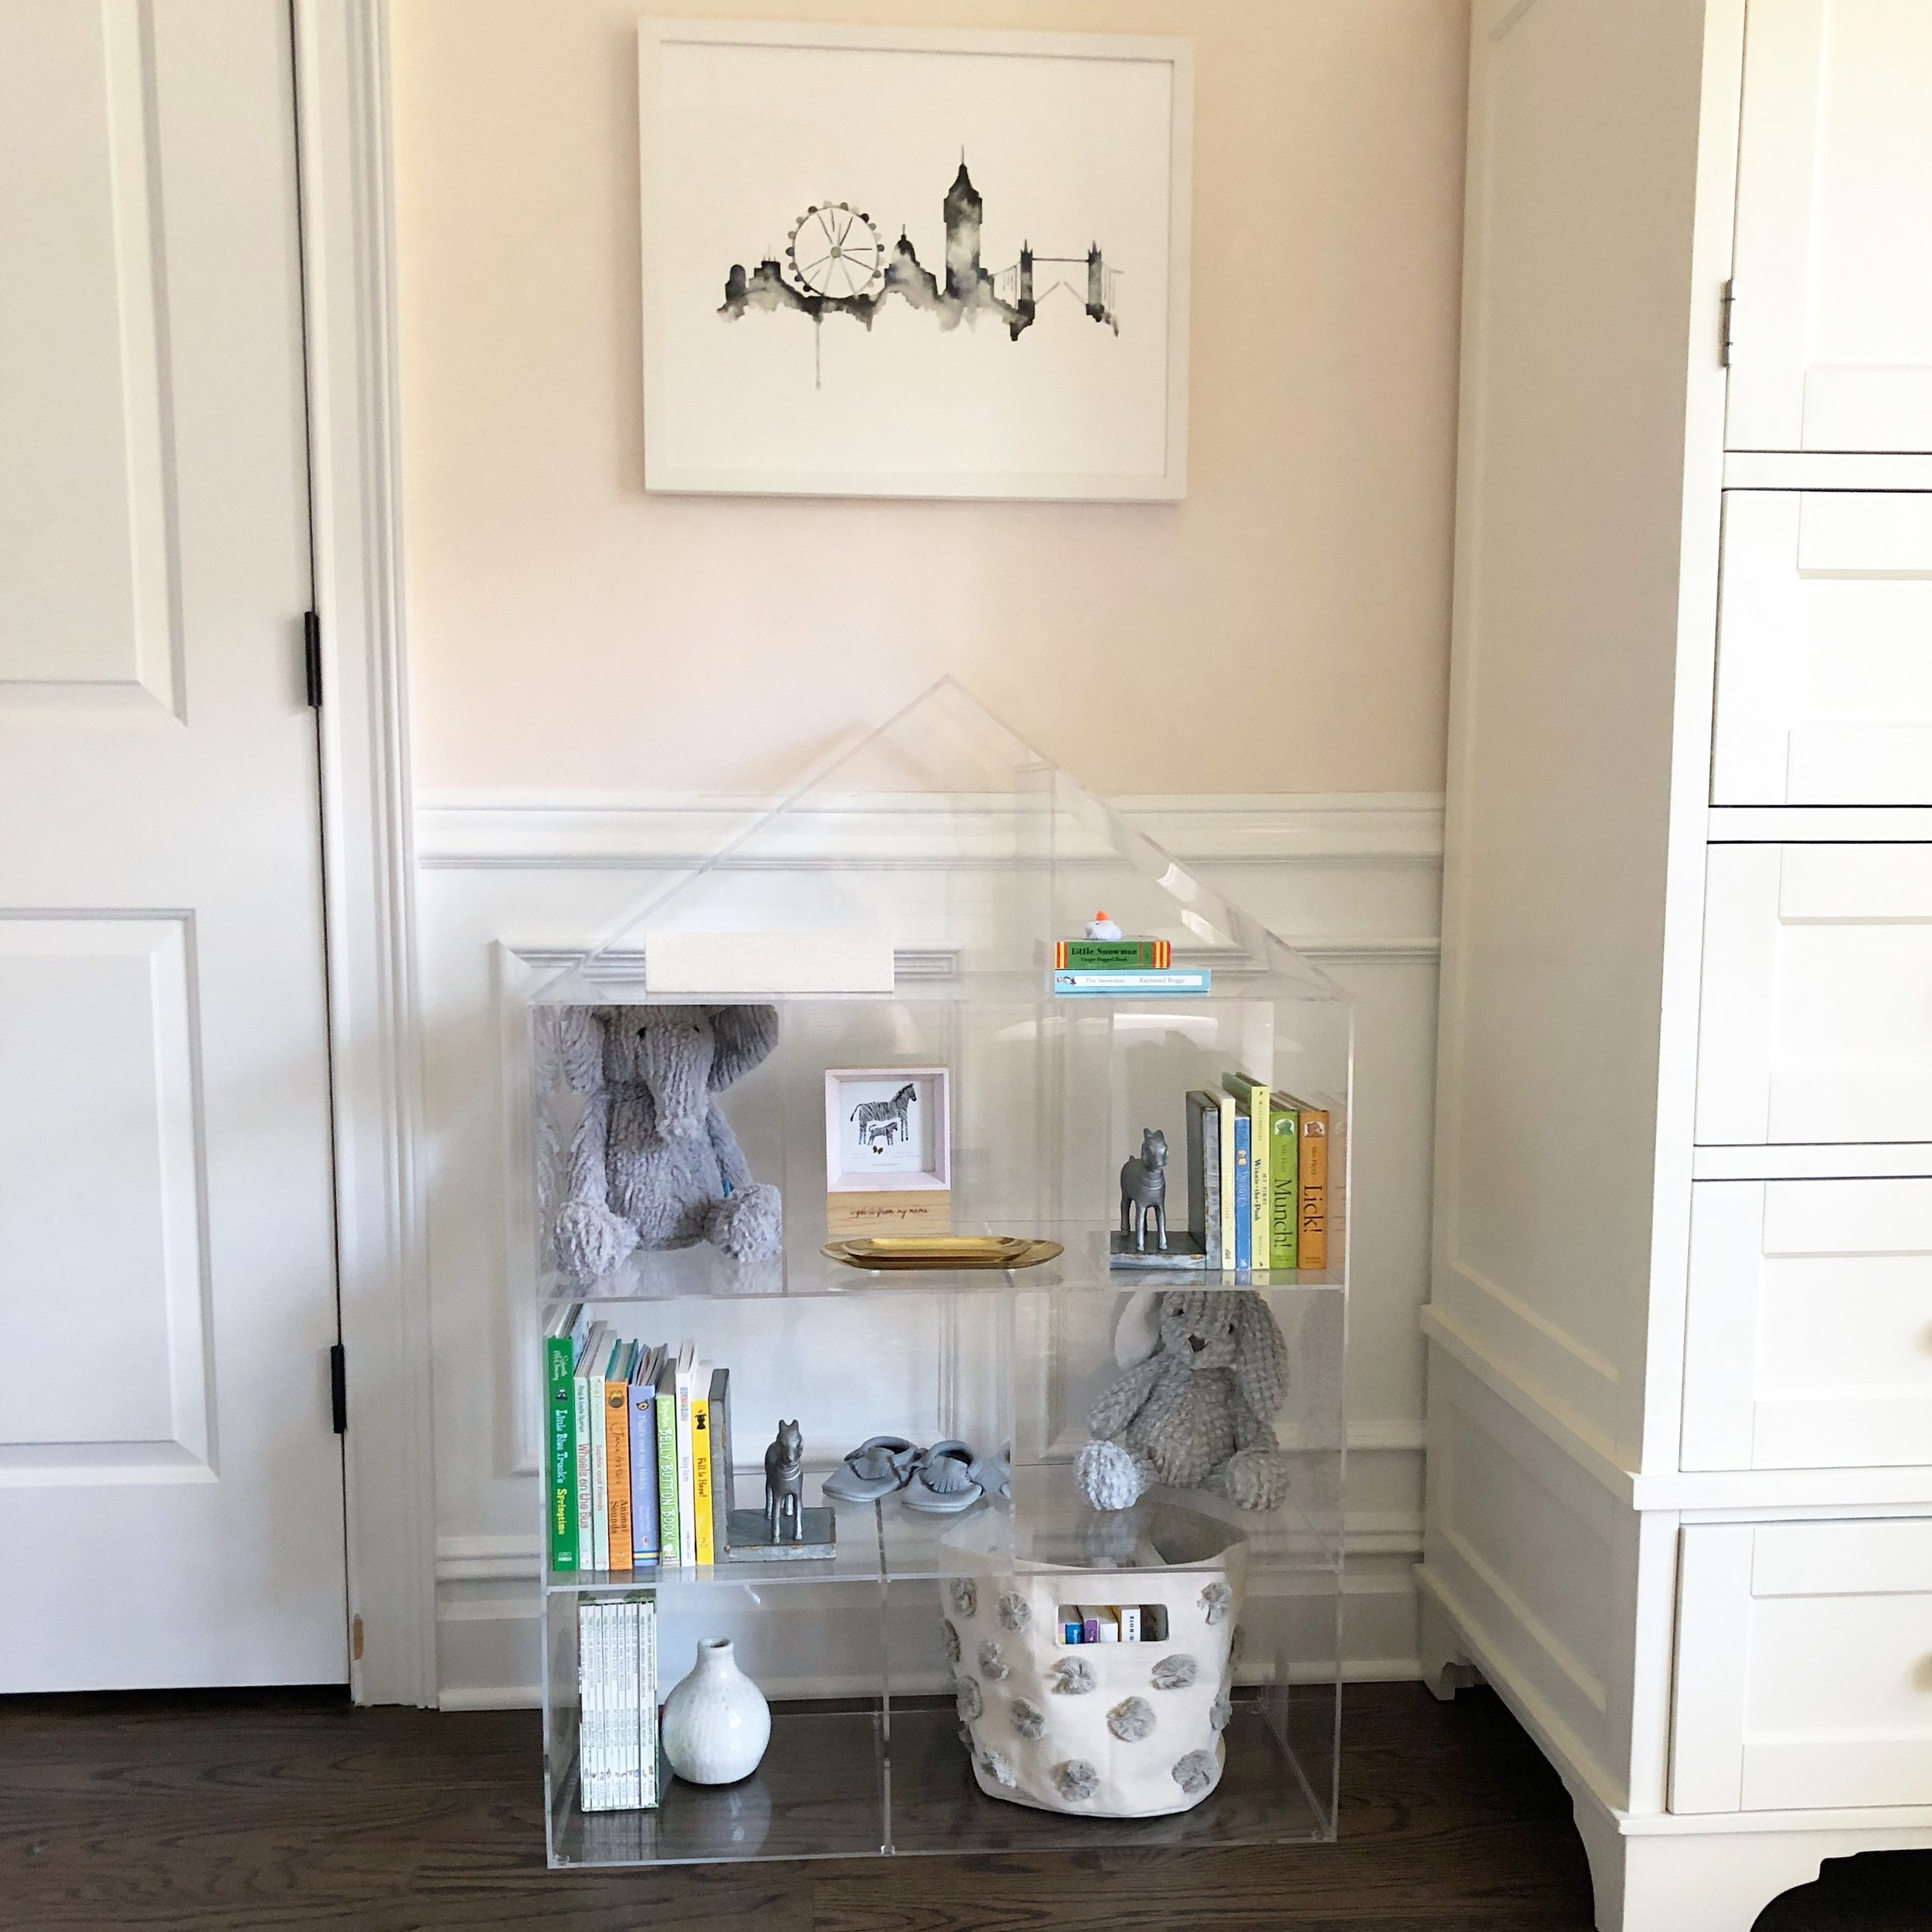 One of the only new pieces of furniture in the room: this acrylic dollhouse bookcase, which was too cute to pass up. Artwork is a piece we had hanging in our Hoboken apartment a few years ago!